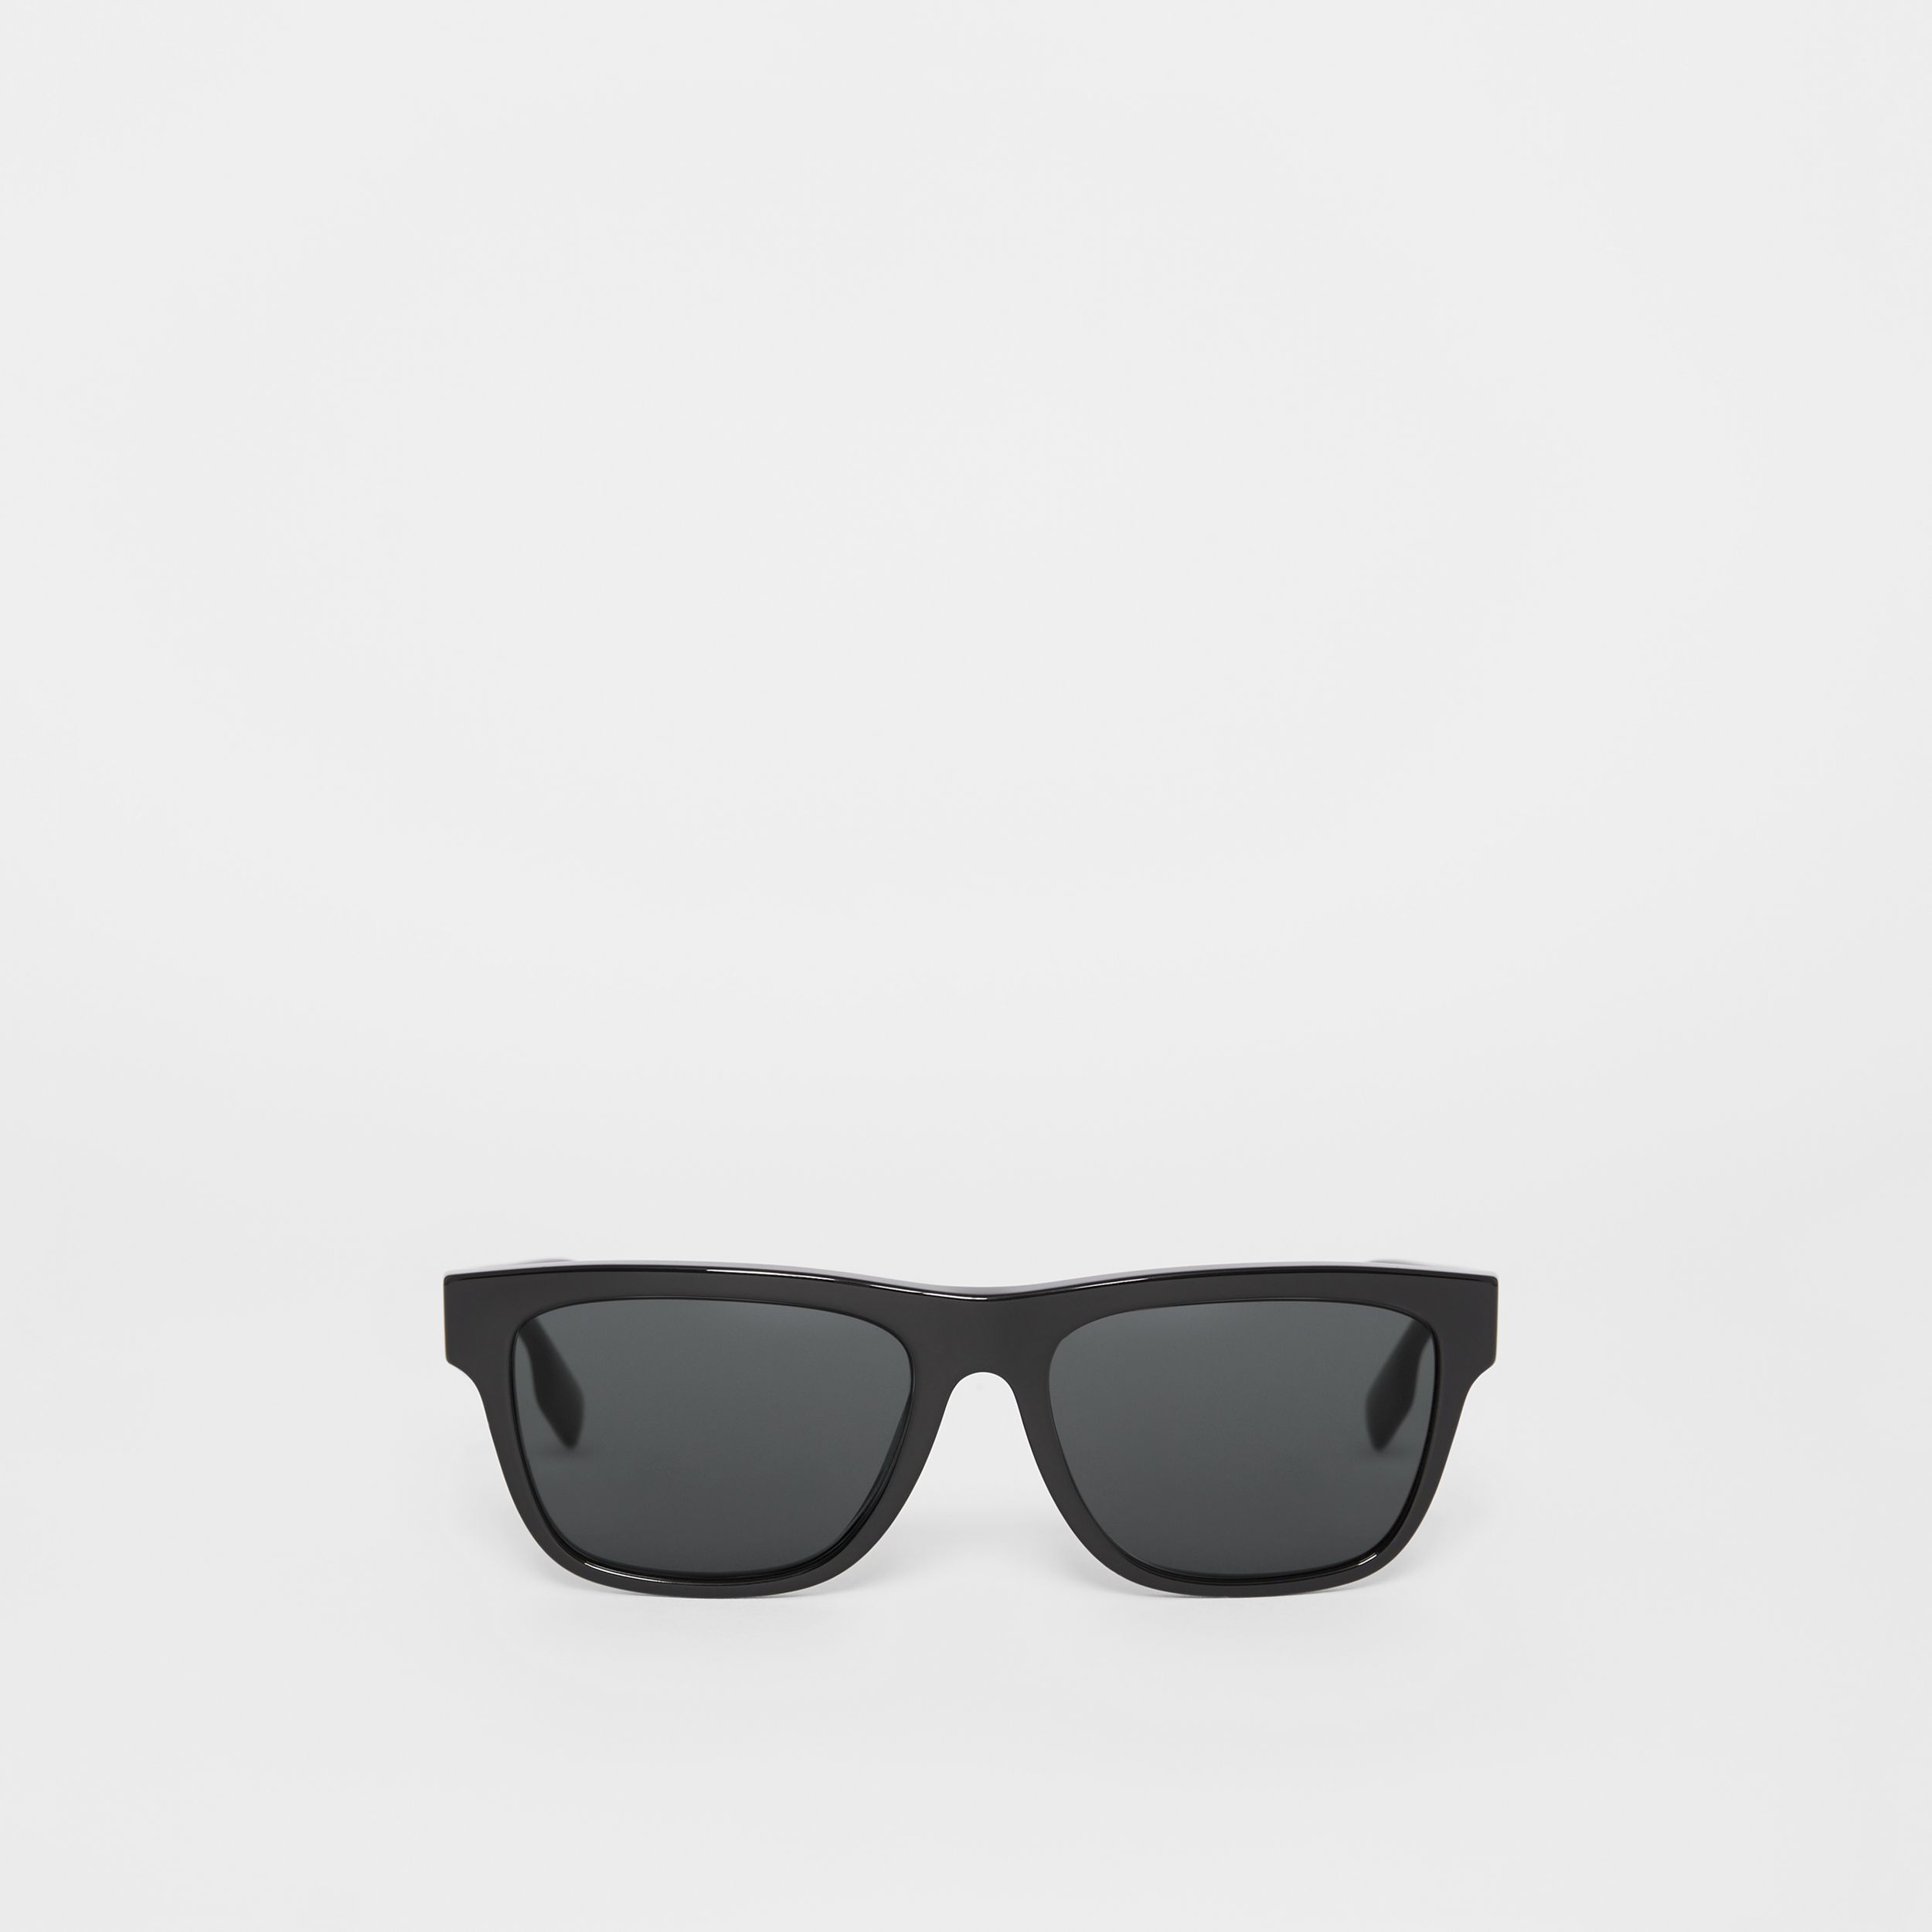 Square Frame Sunglasses in Black - Men | Burberry Australia - 1